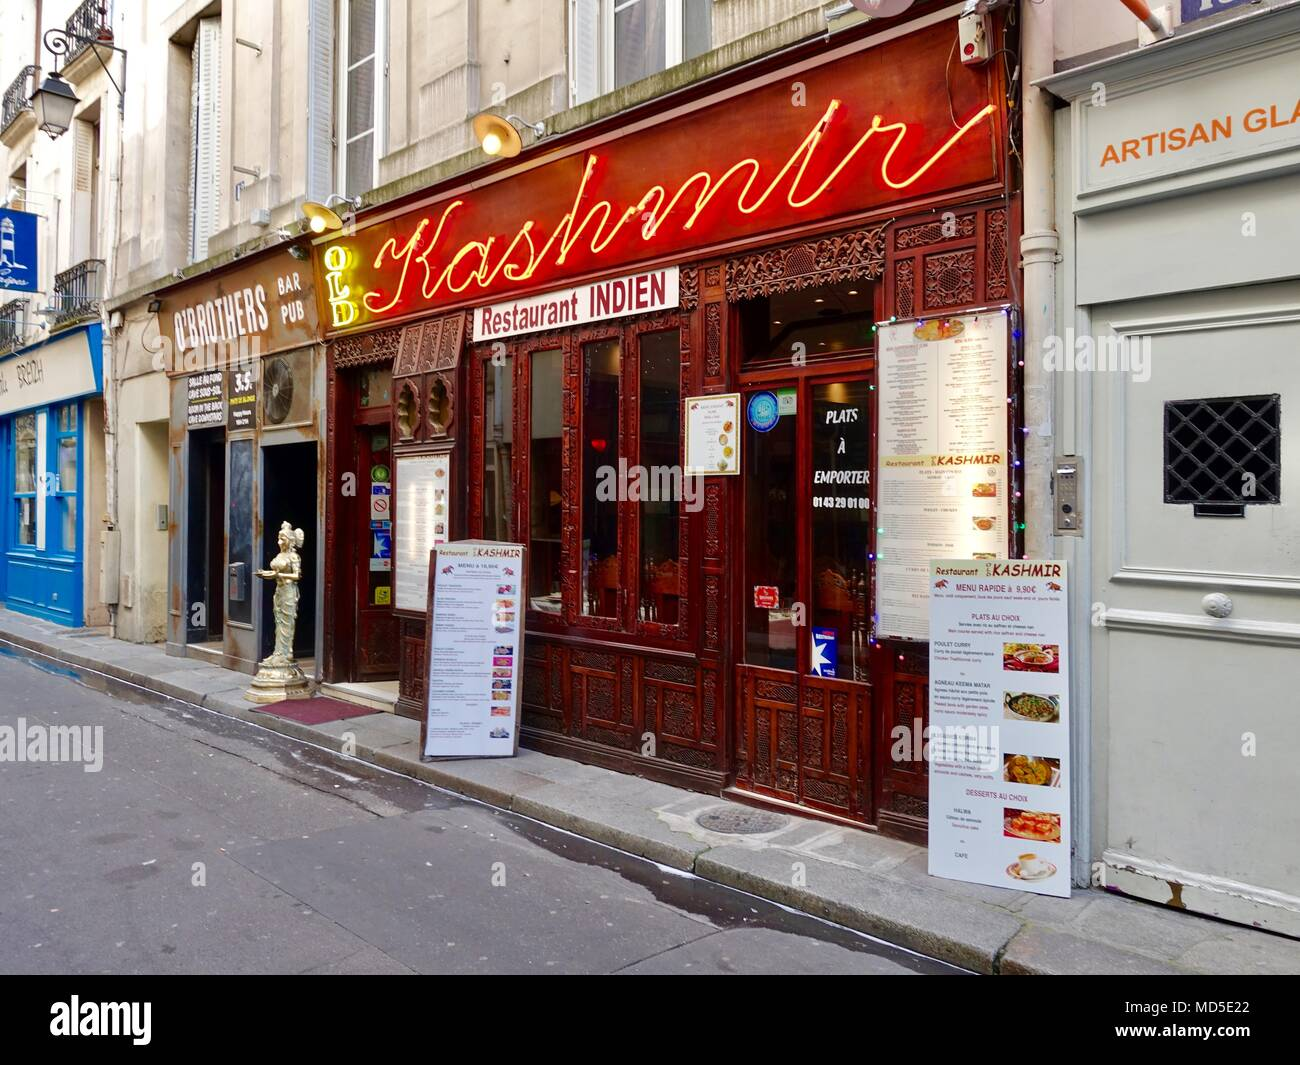 Indien, Indian restaurant, exterior in the early morning, Paris, France - Stock Image